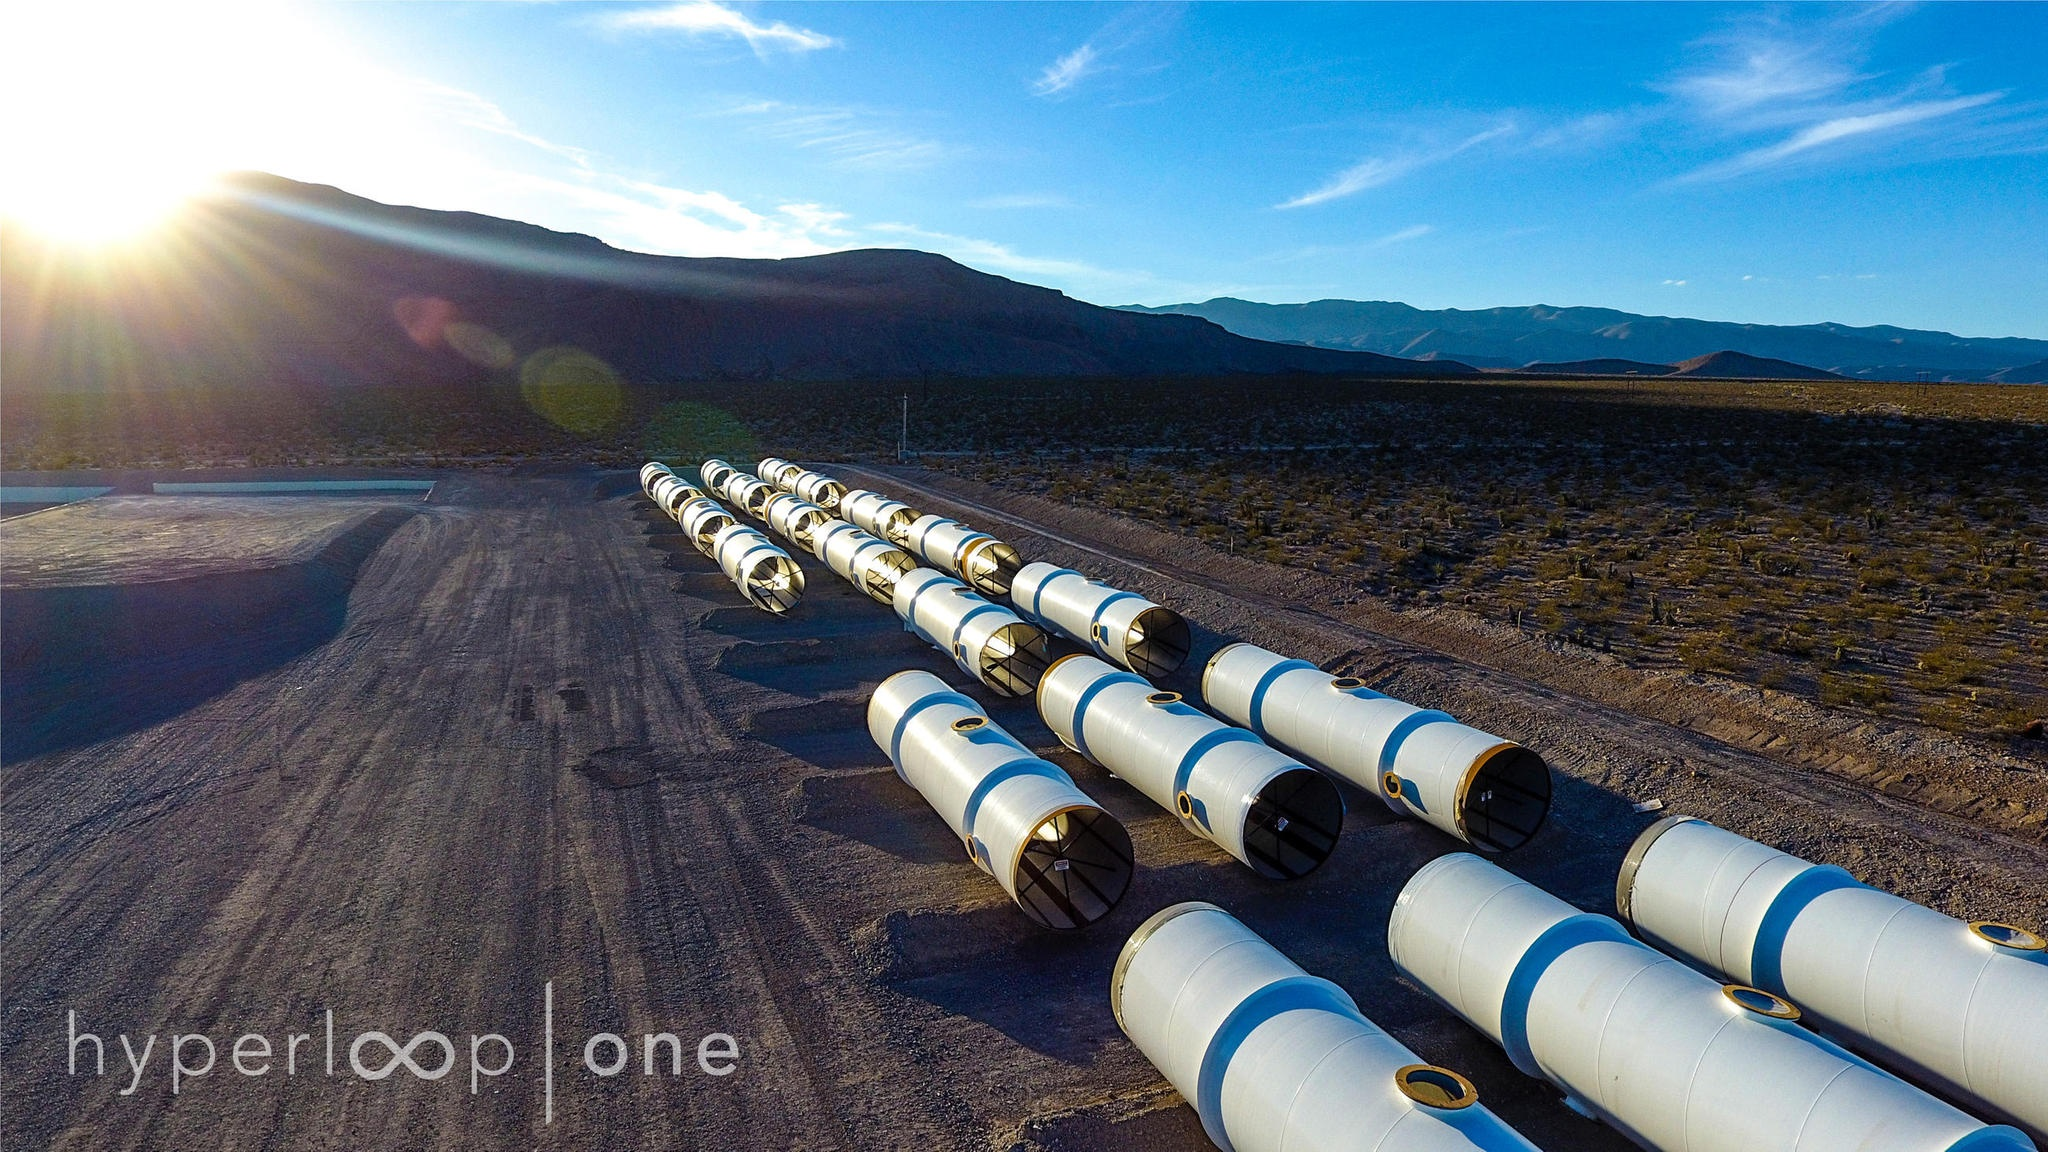 Hyperloop 6